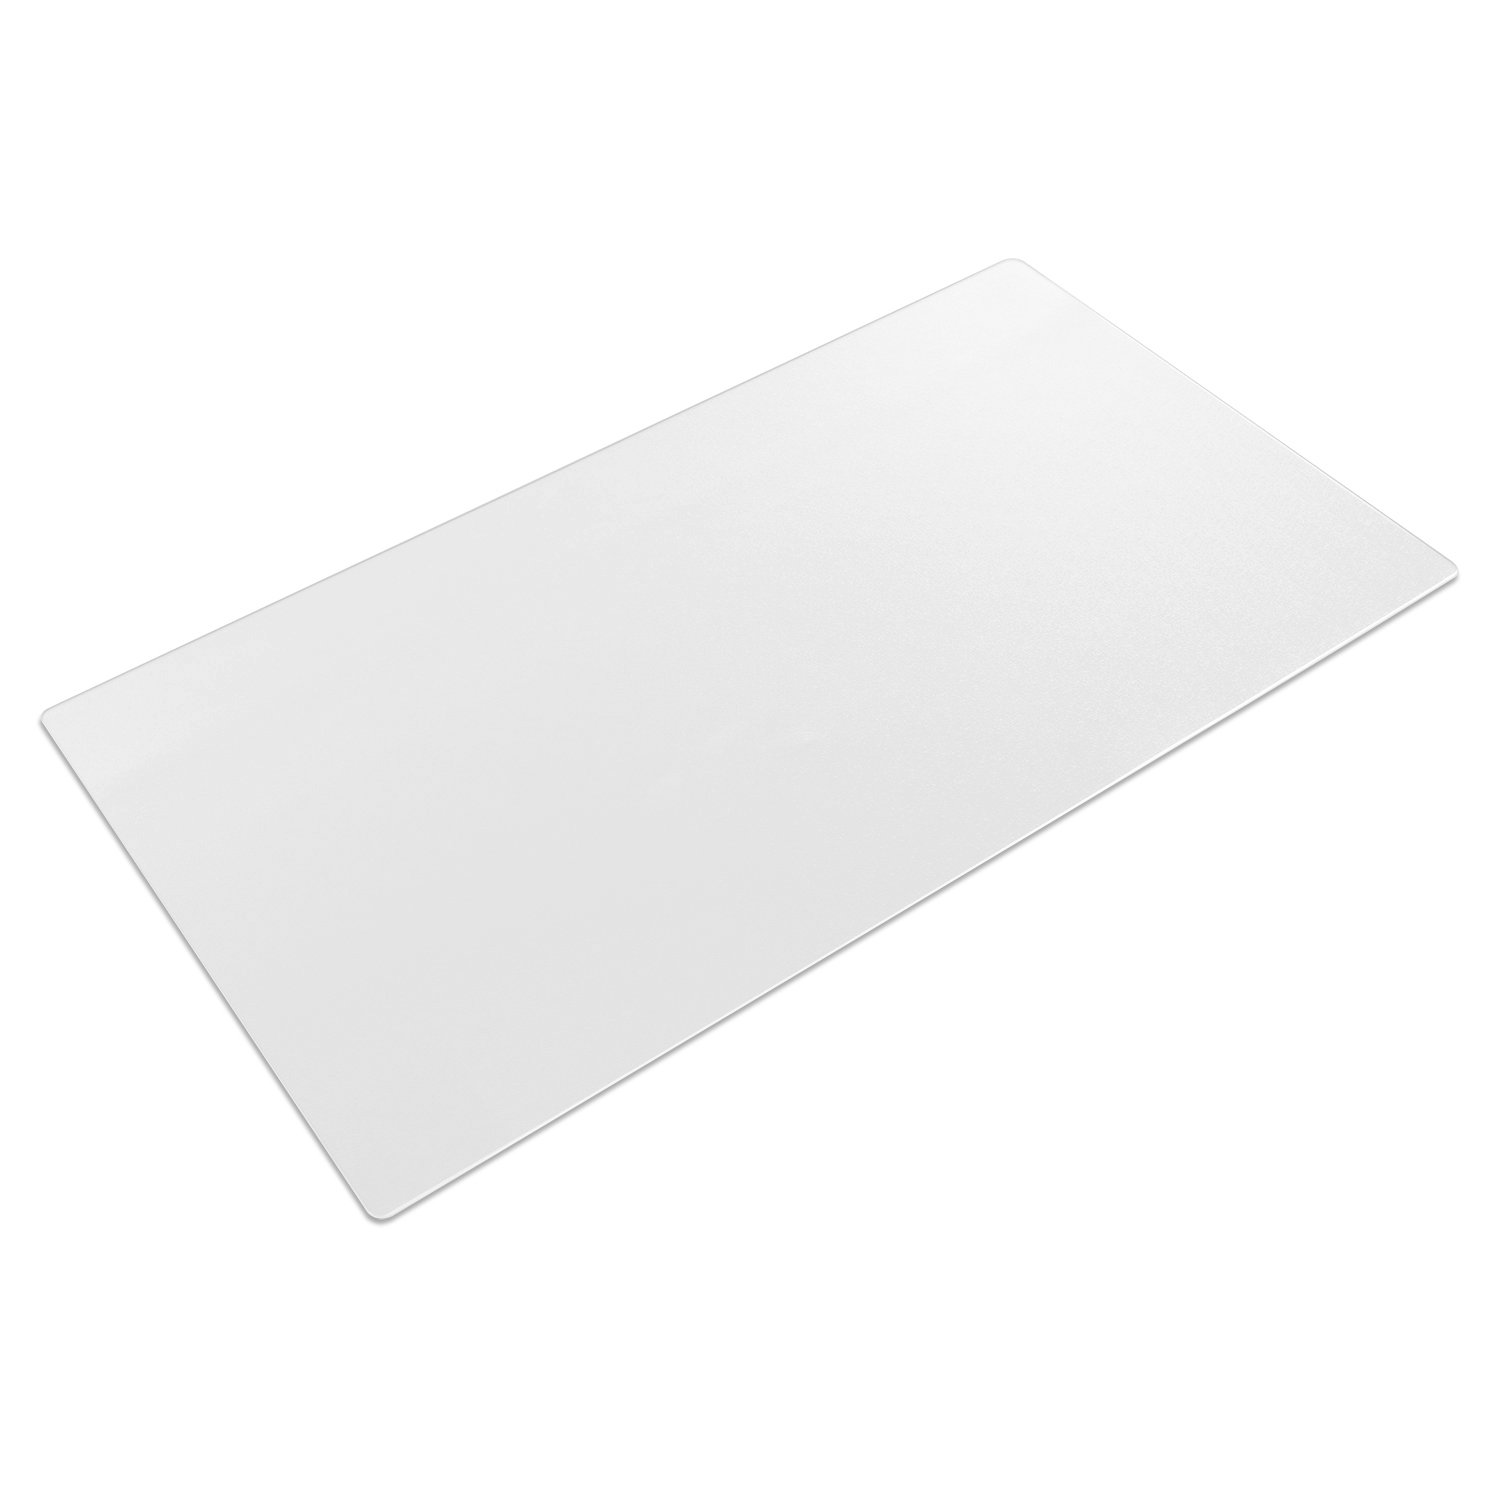 Desk Pad Clear, Fleeken Non-Slip PVC Soft Writing Mat - 34 x17 Inches Round Edges by Fleeken